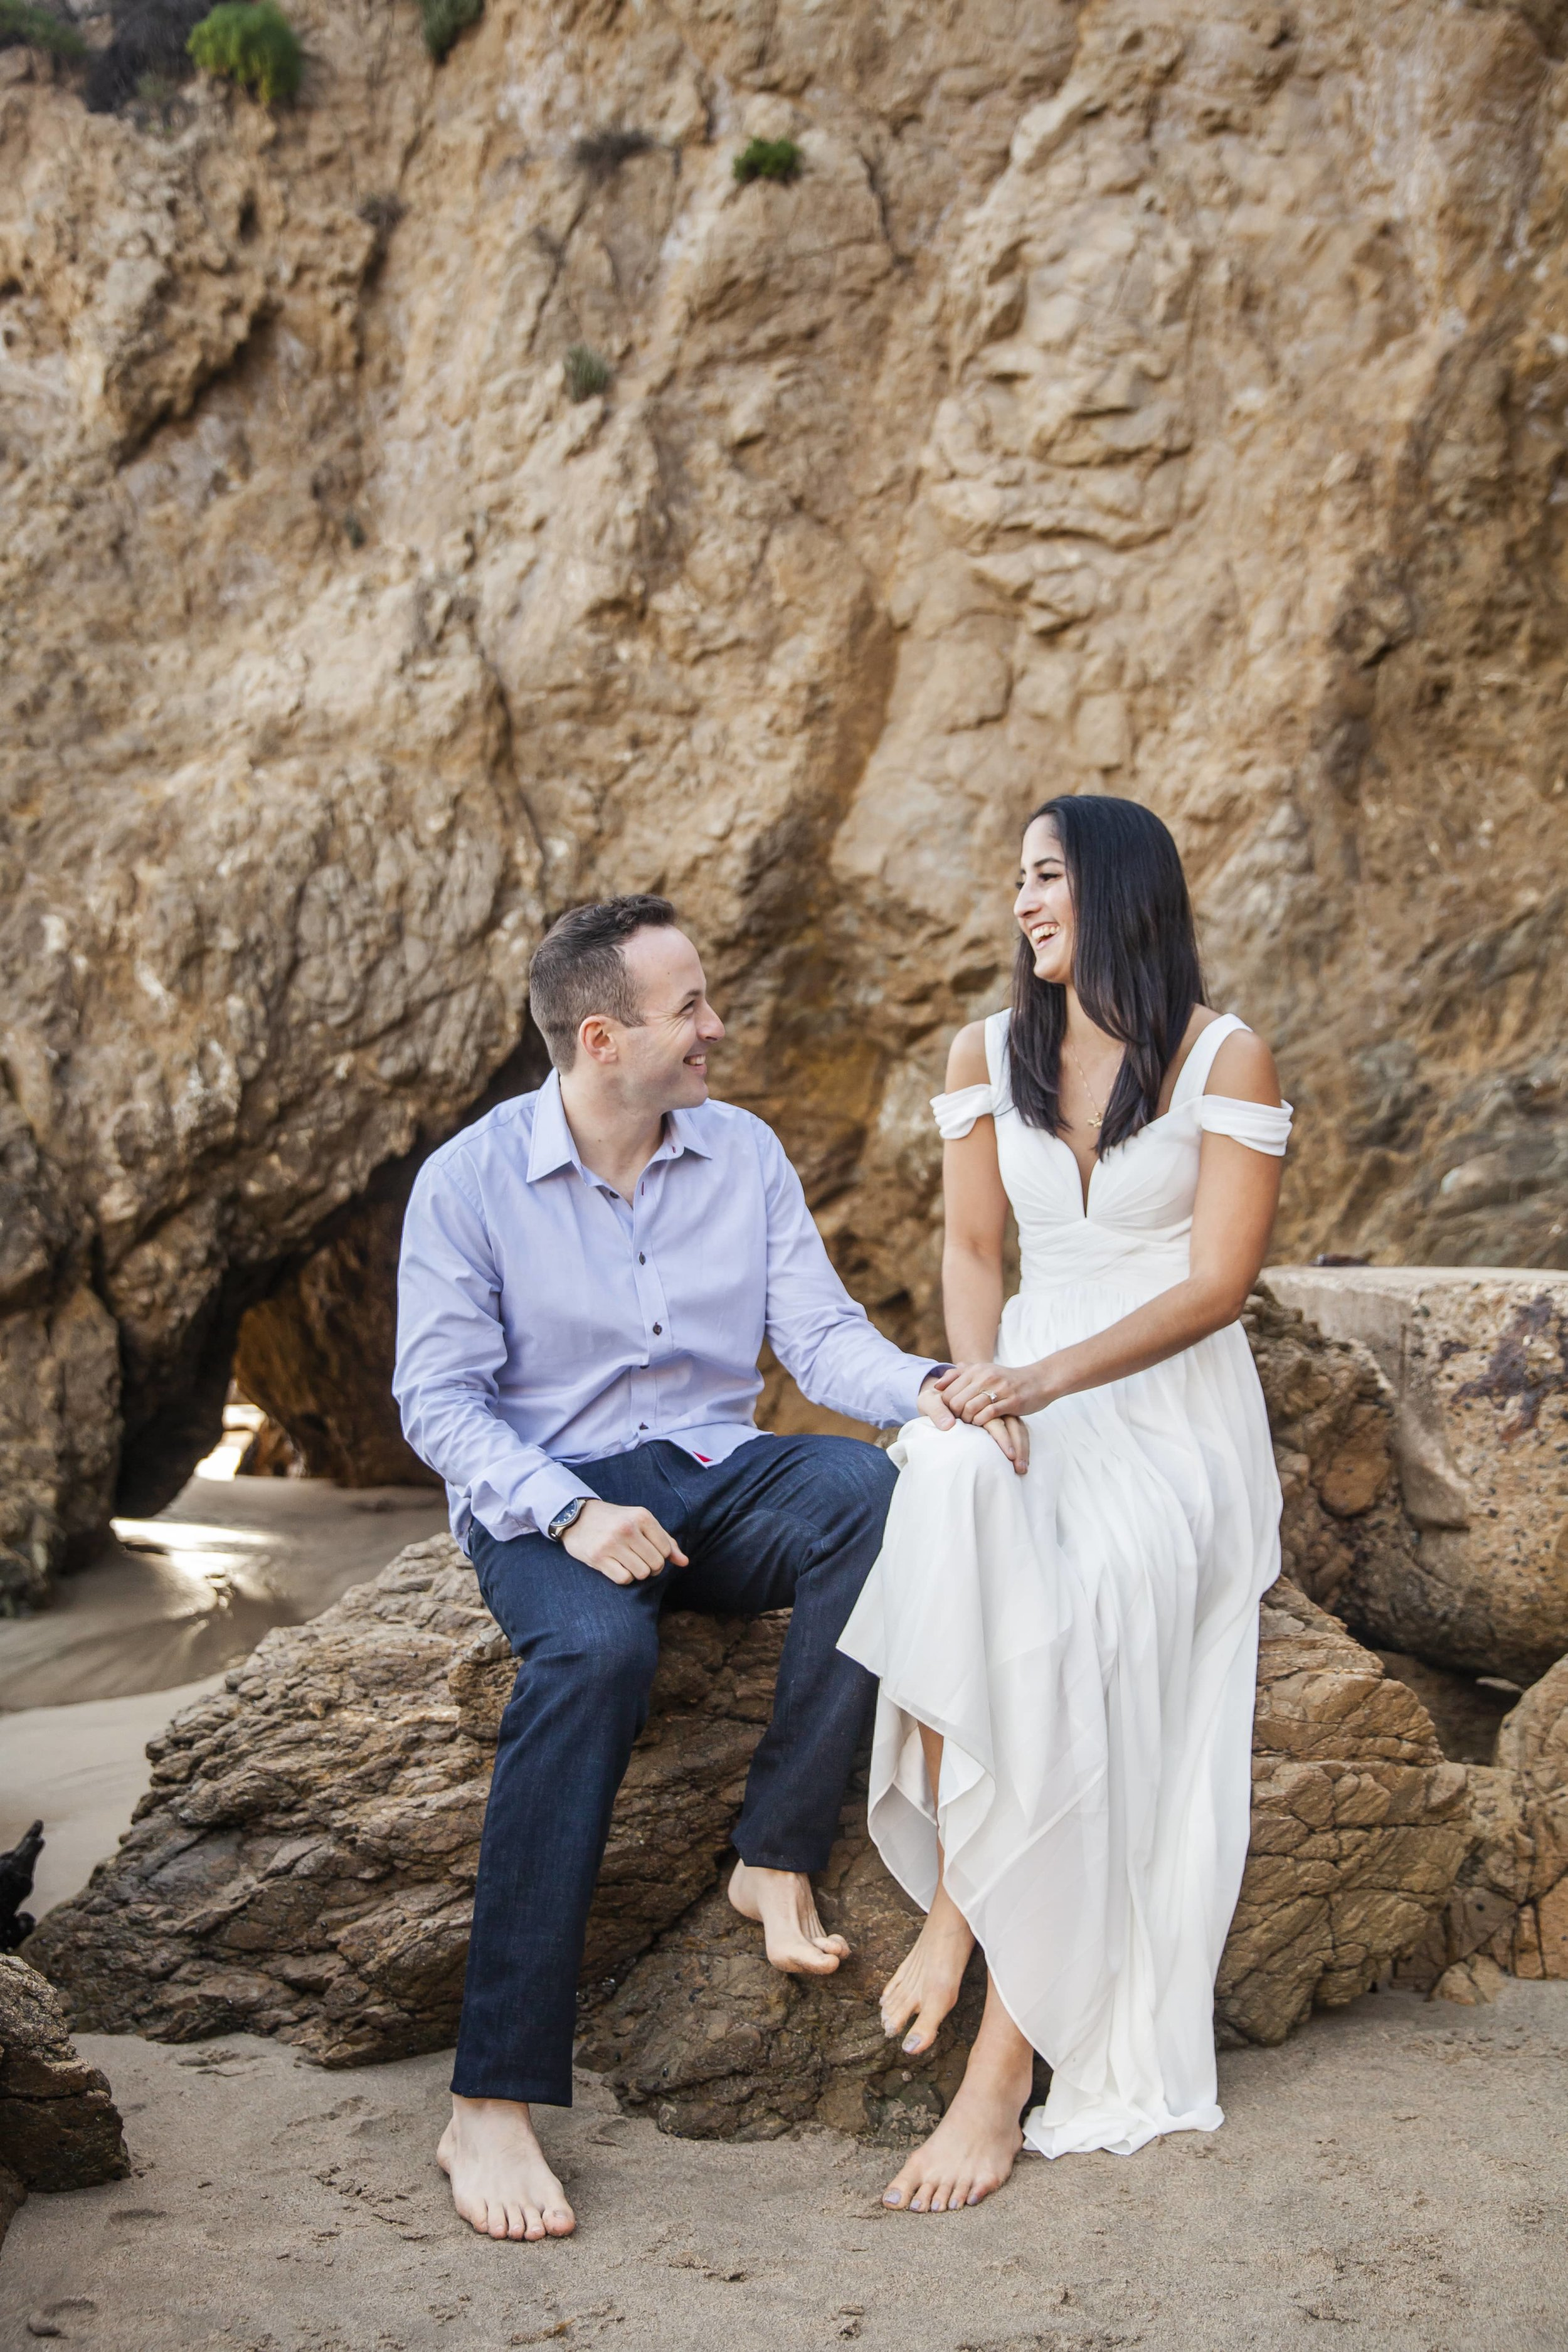 California Engagement Photography - Happy couple sitting on a rock laughing together.